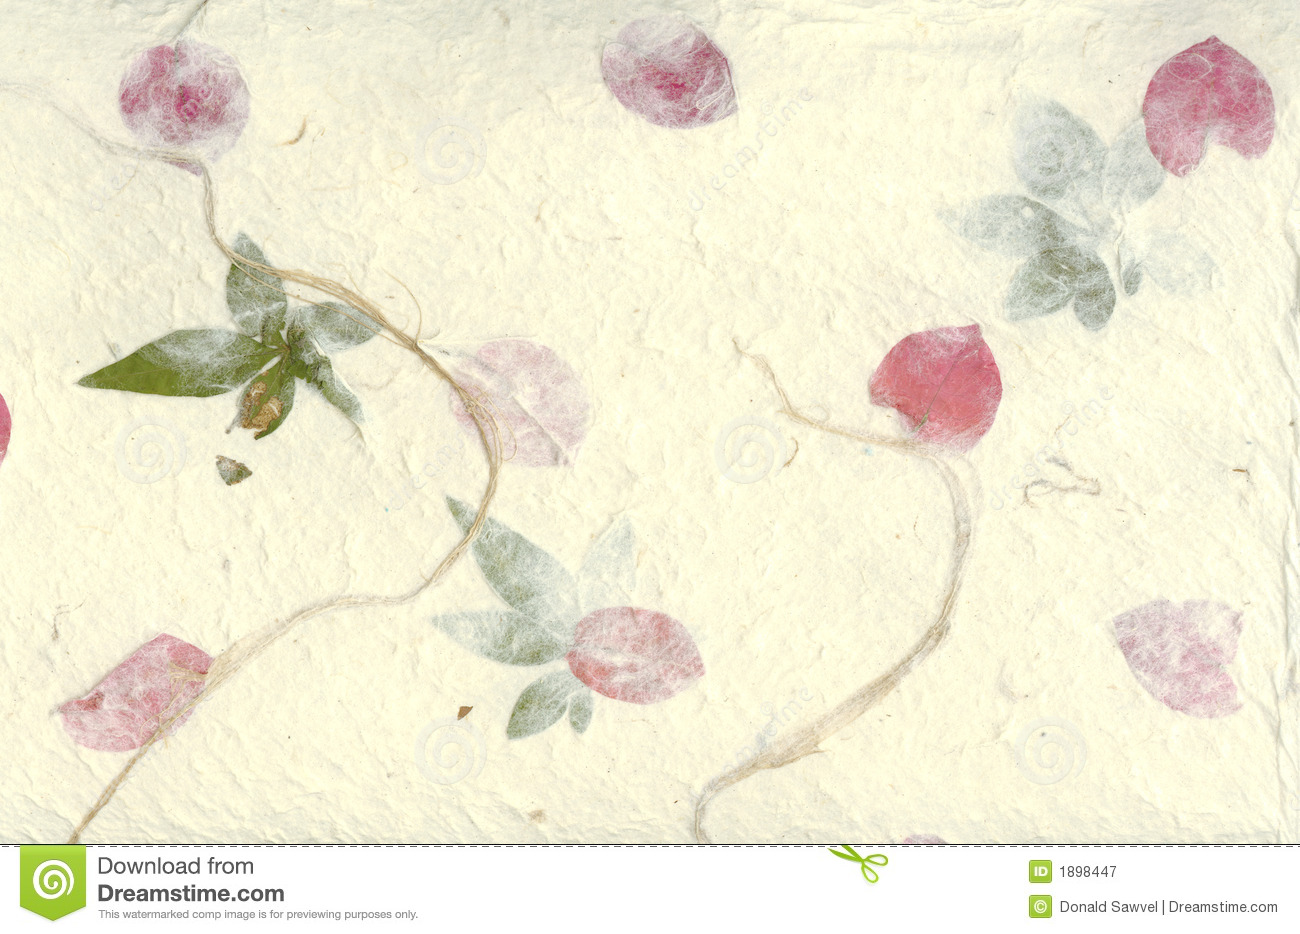 handmade paper with flower petals